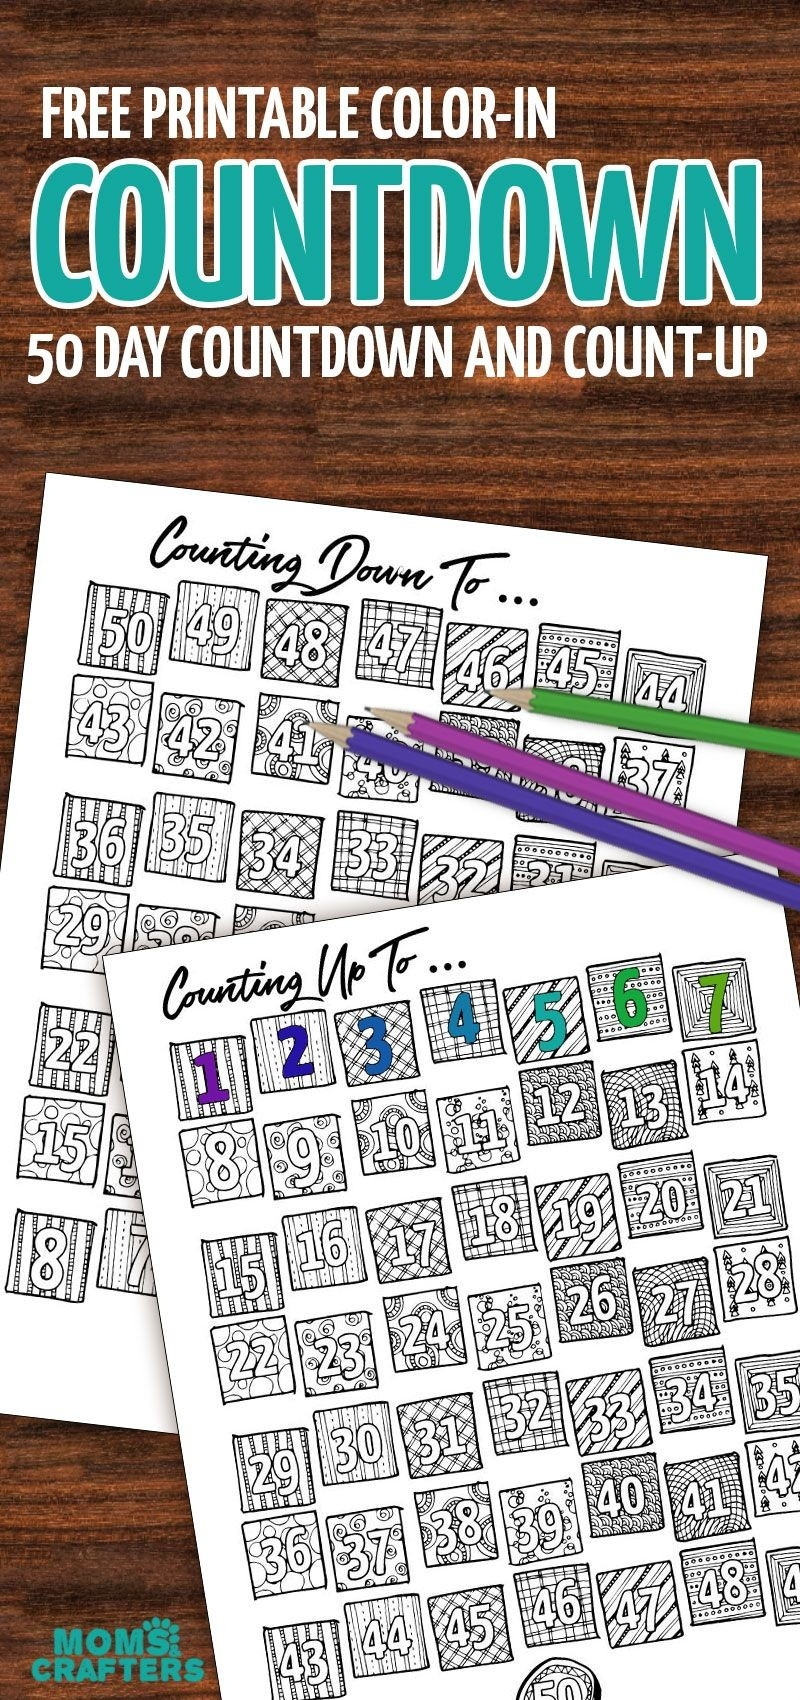 Grab This Fun Color-In Countdown And Progress Tracker | Moms-Blank Countdown Calendar 50 Days